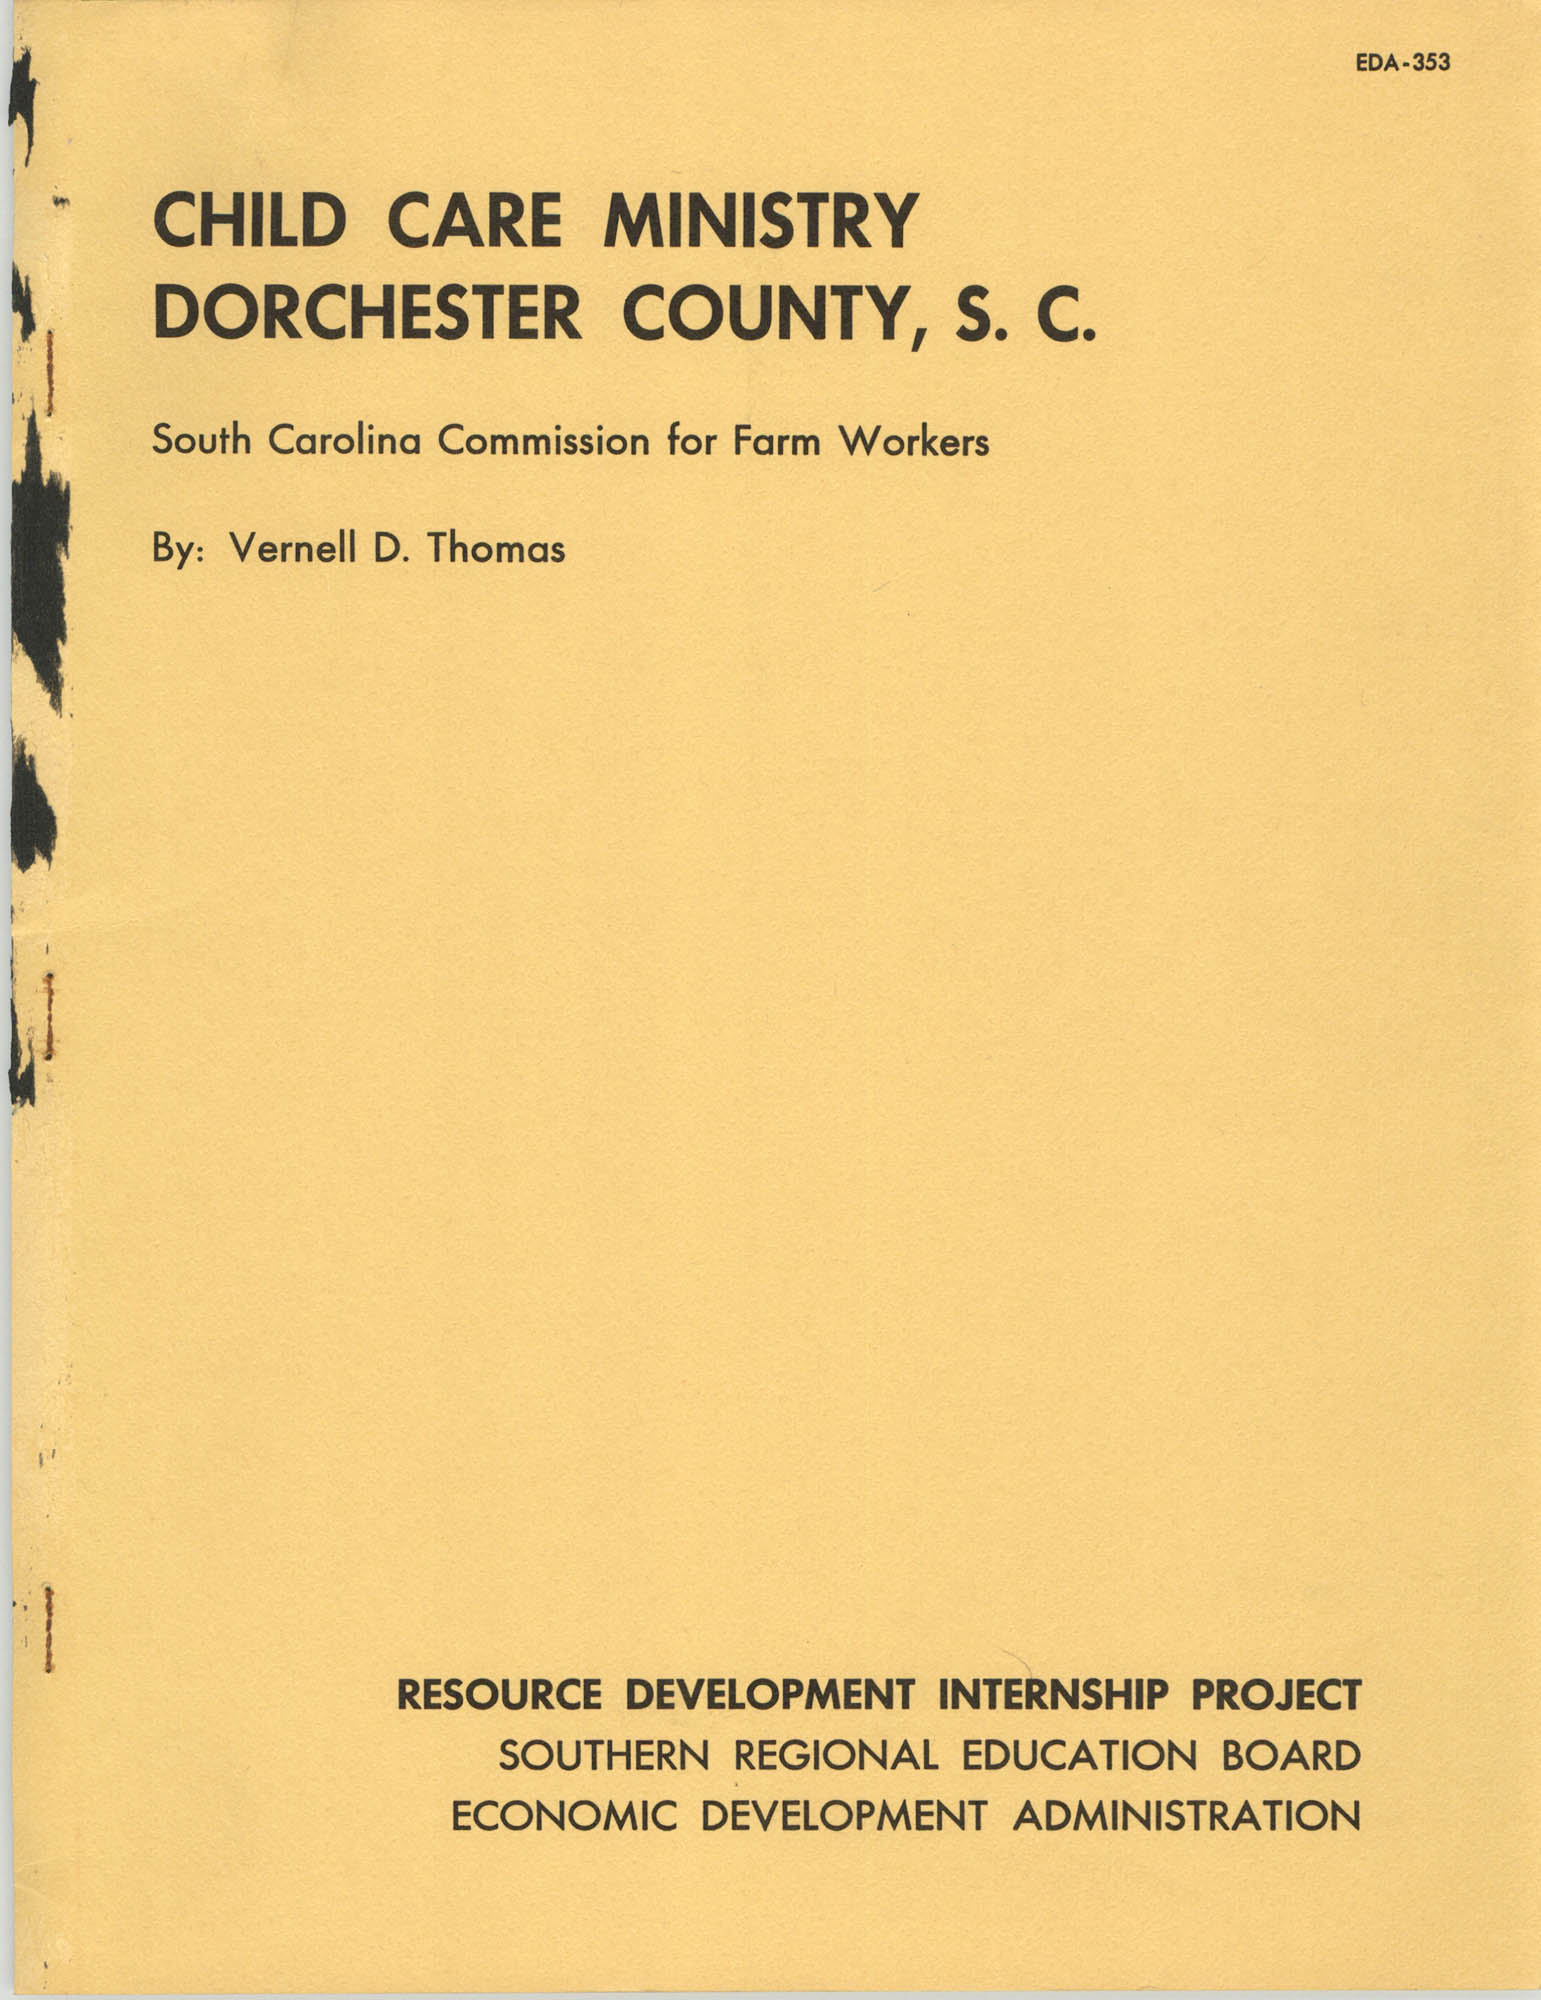 Child Care Ministry, Dorchester County, S.C., Front Cover